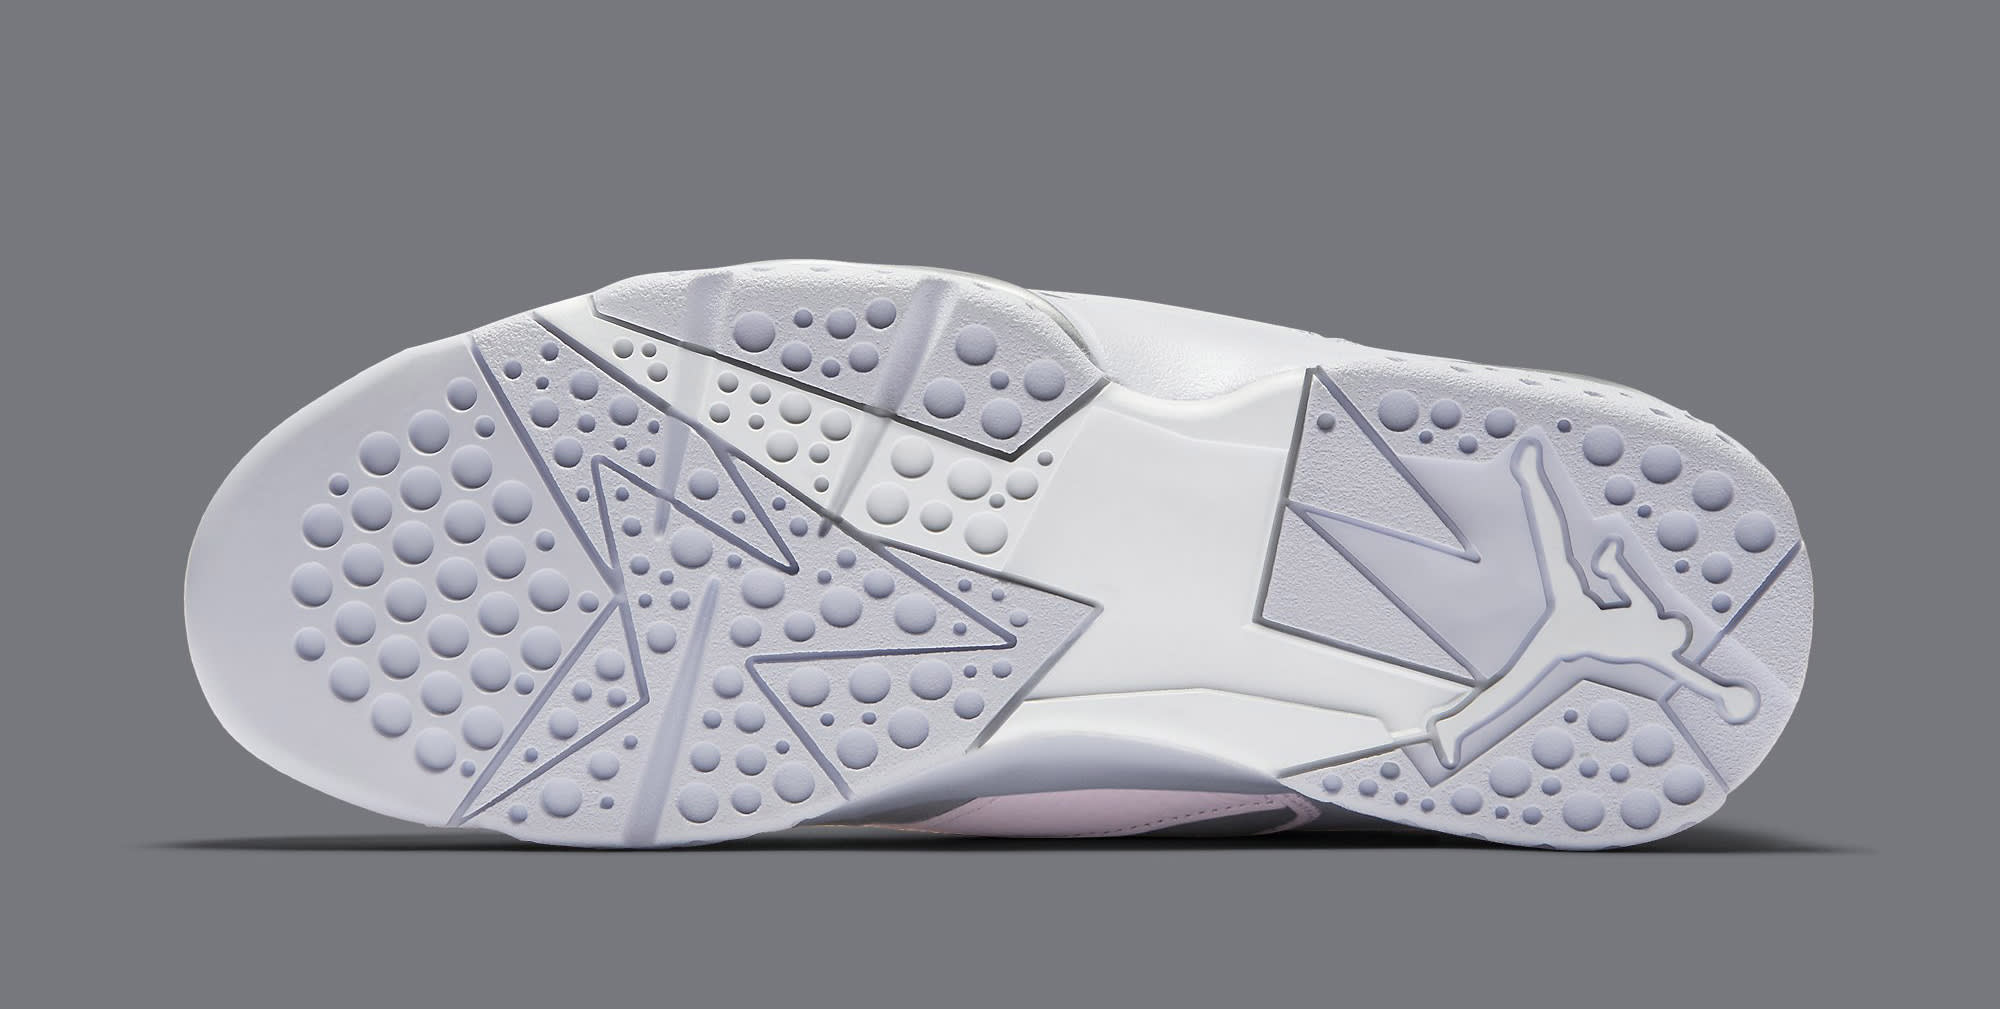 White Air Jordan 7 304775-120 Sole